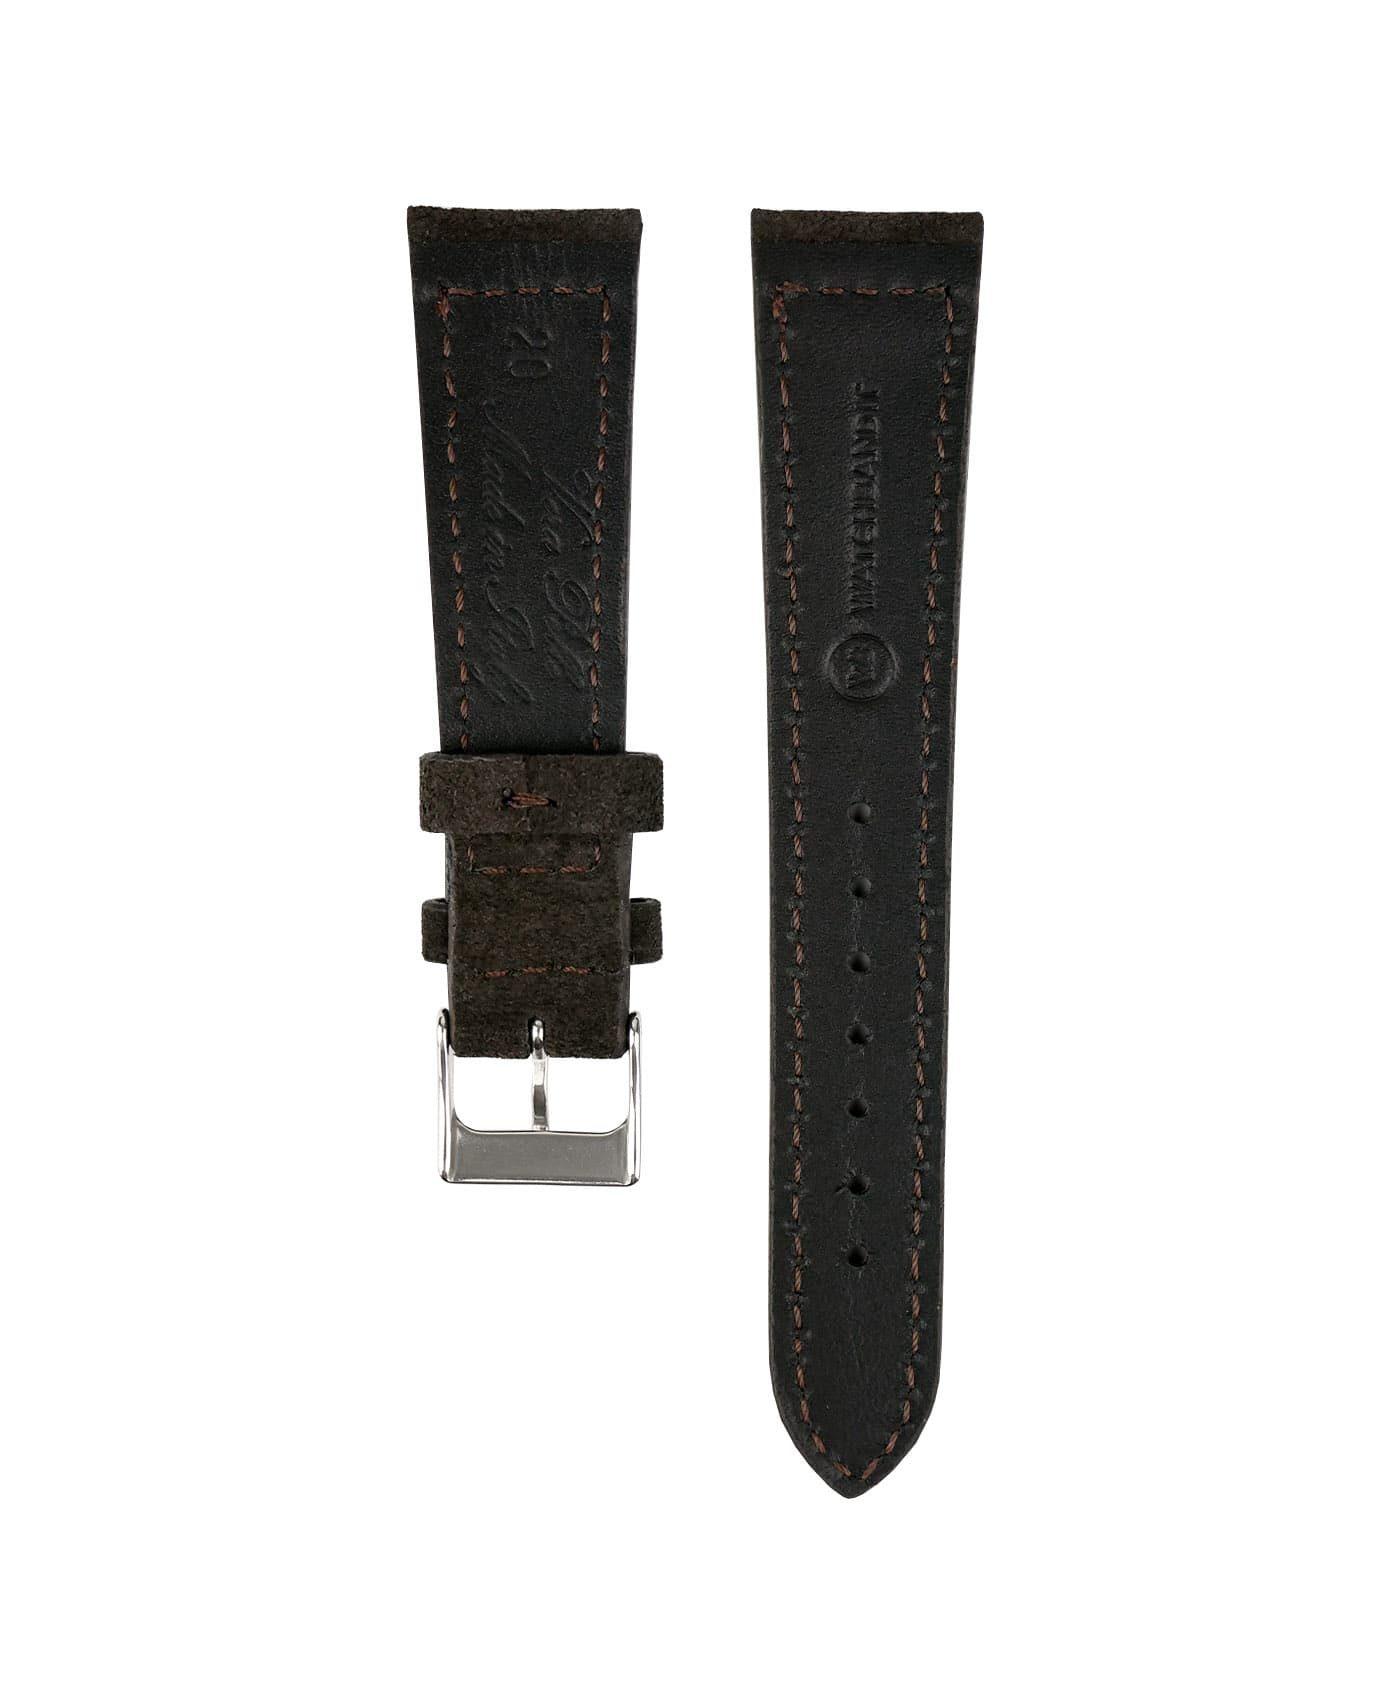 Suede leather strap with side seam_dark brown_back